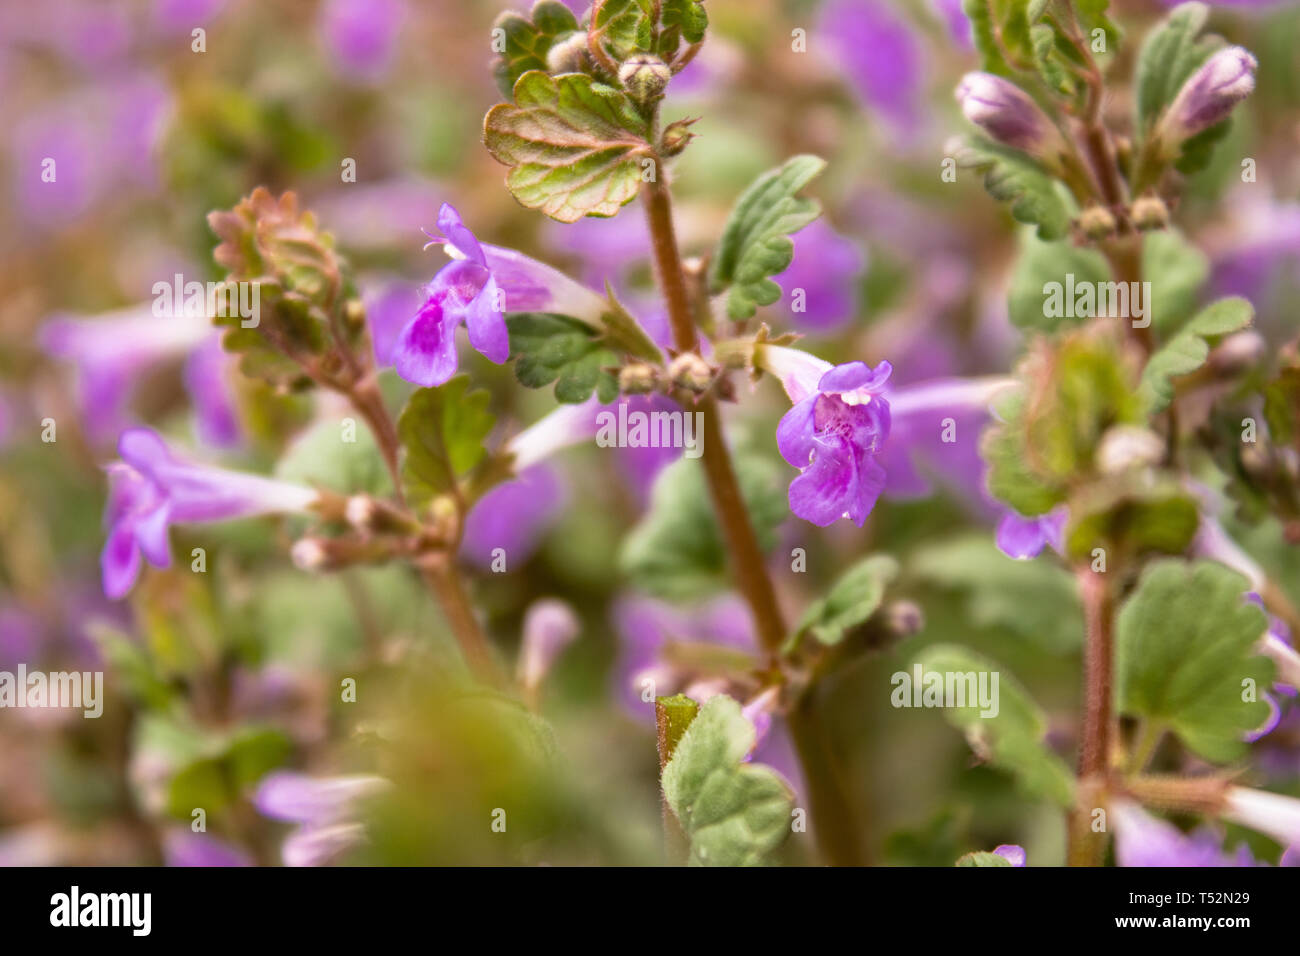 Purple Flowers On A Background Of Green Leaves Tiny Pink Flowers In Spring Pink Flower Stock Photo Alamy,Goodwill Furniture Donation Drop Off